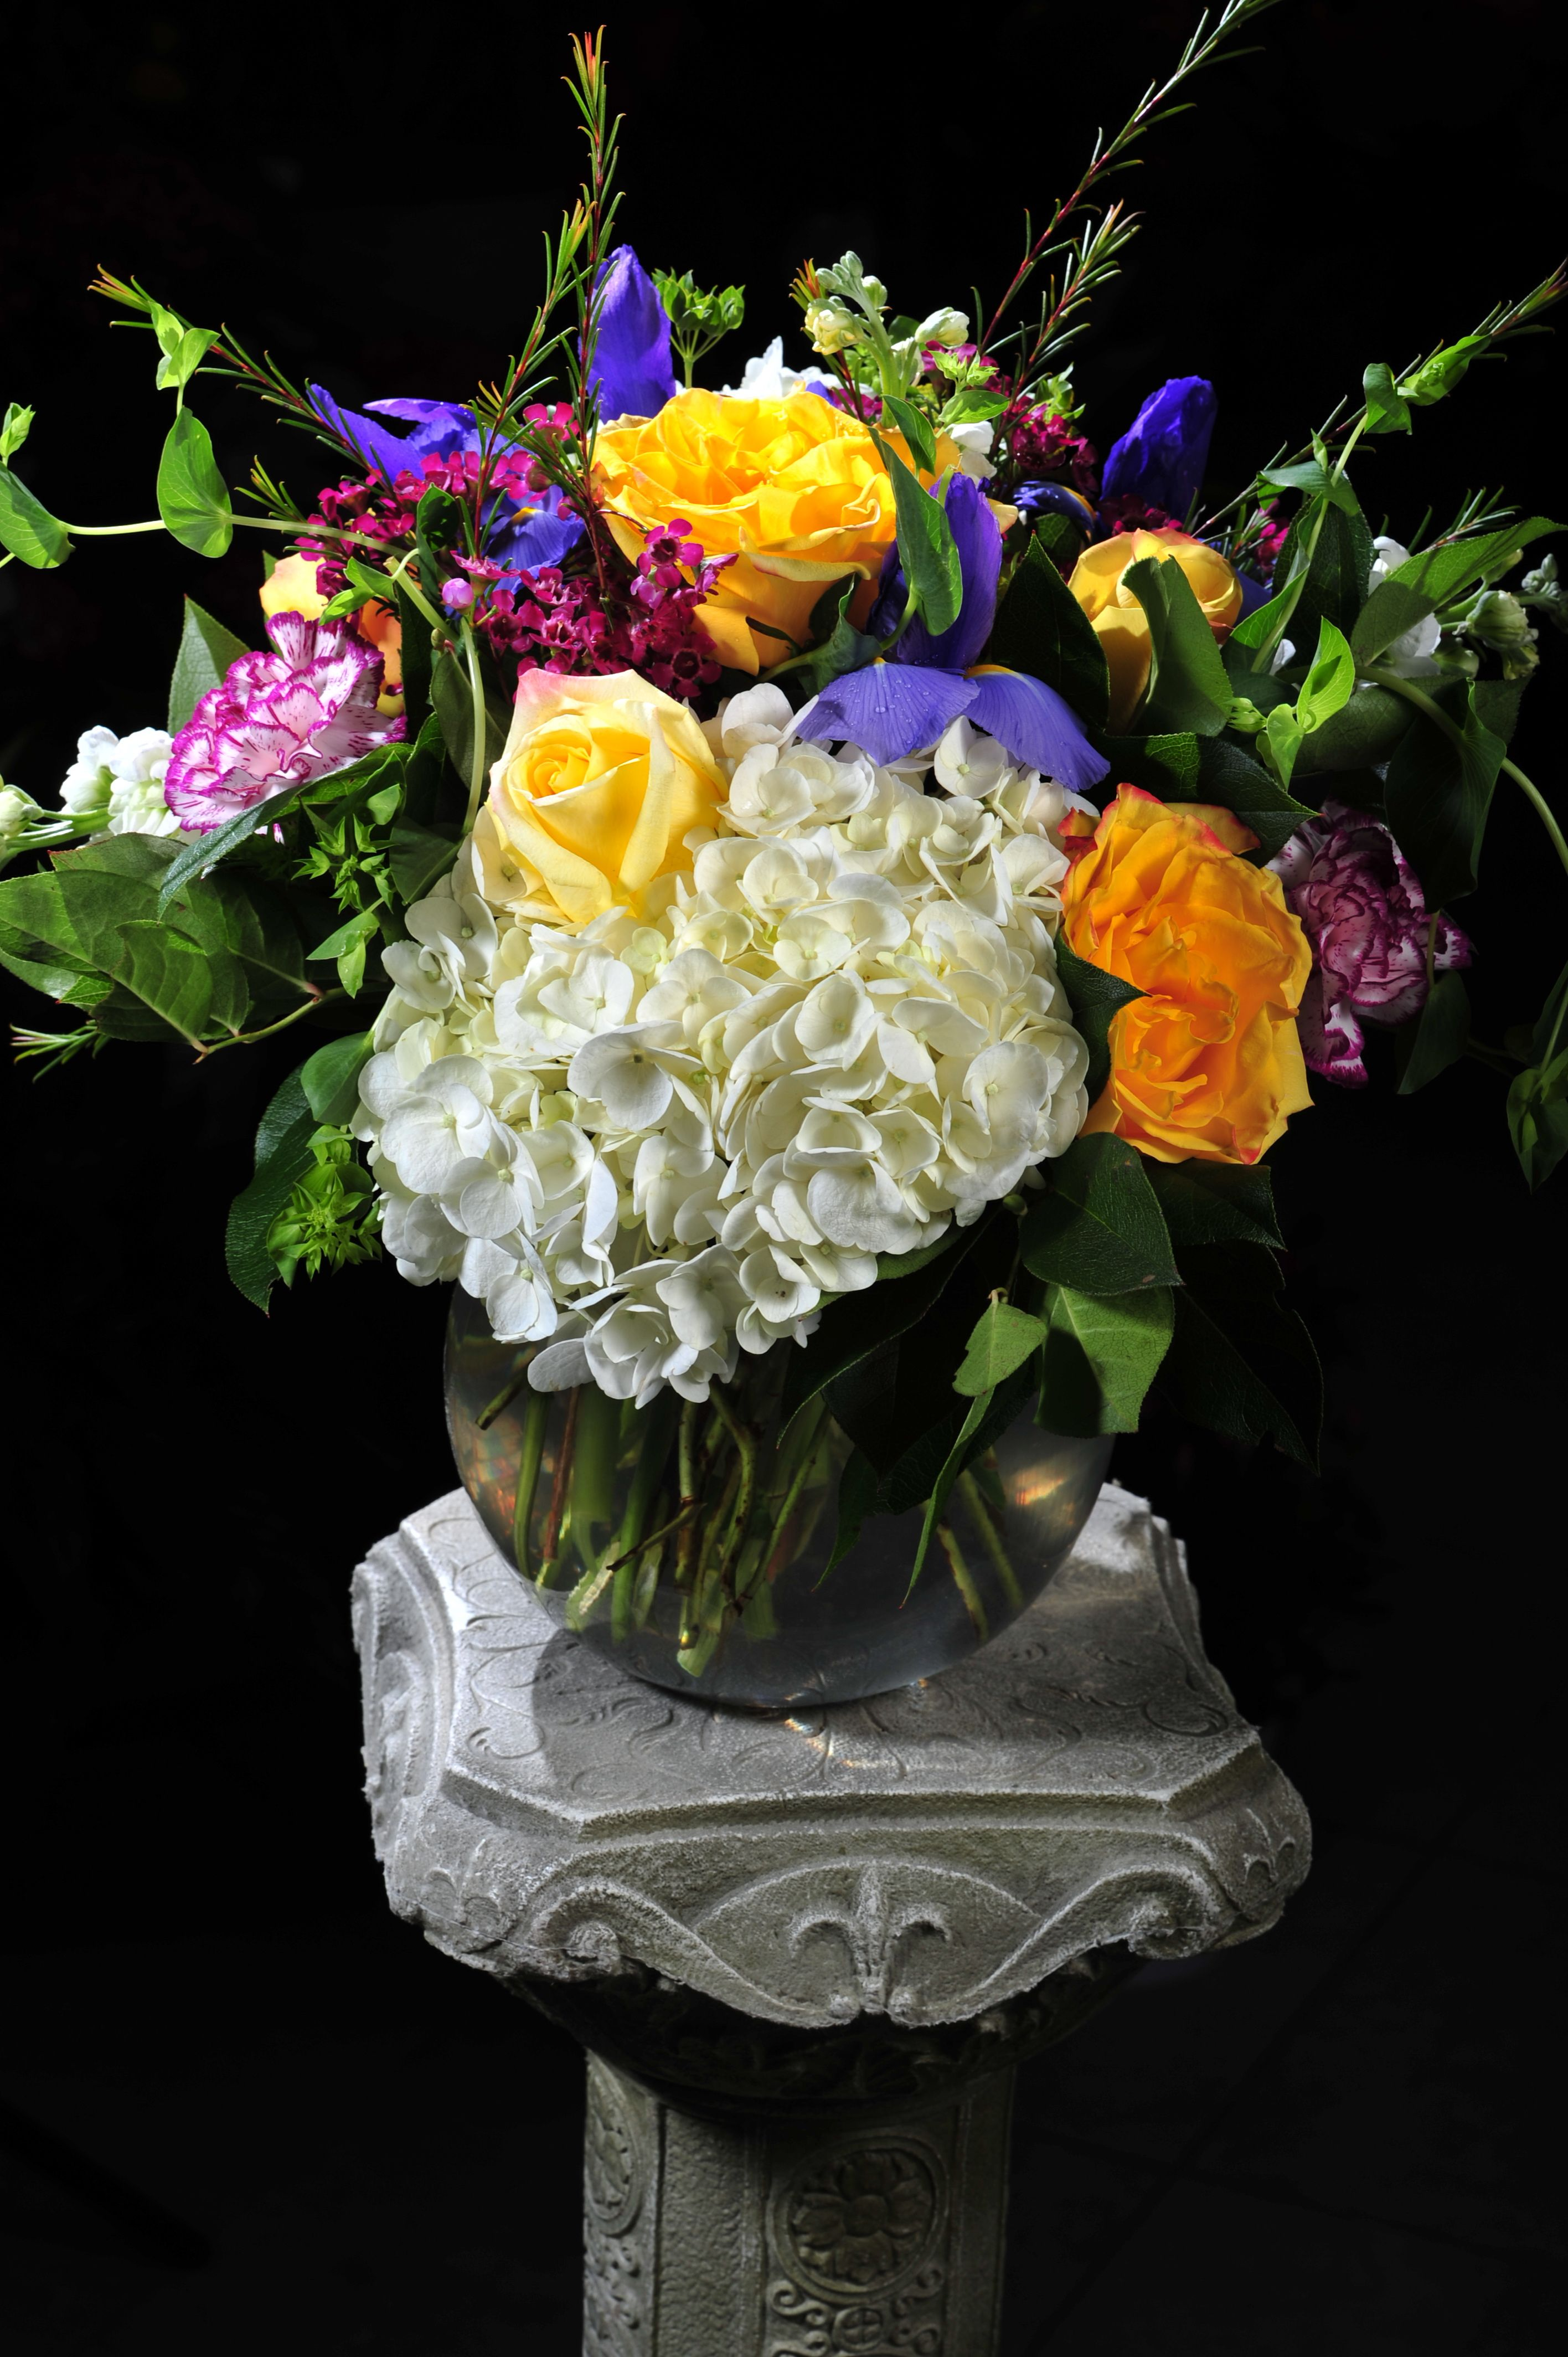 Hydrangea. Roses. Iris. Carnations and more!